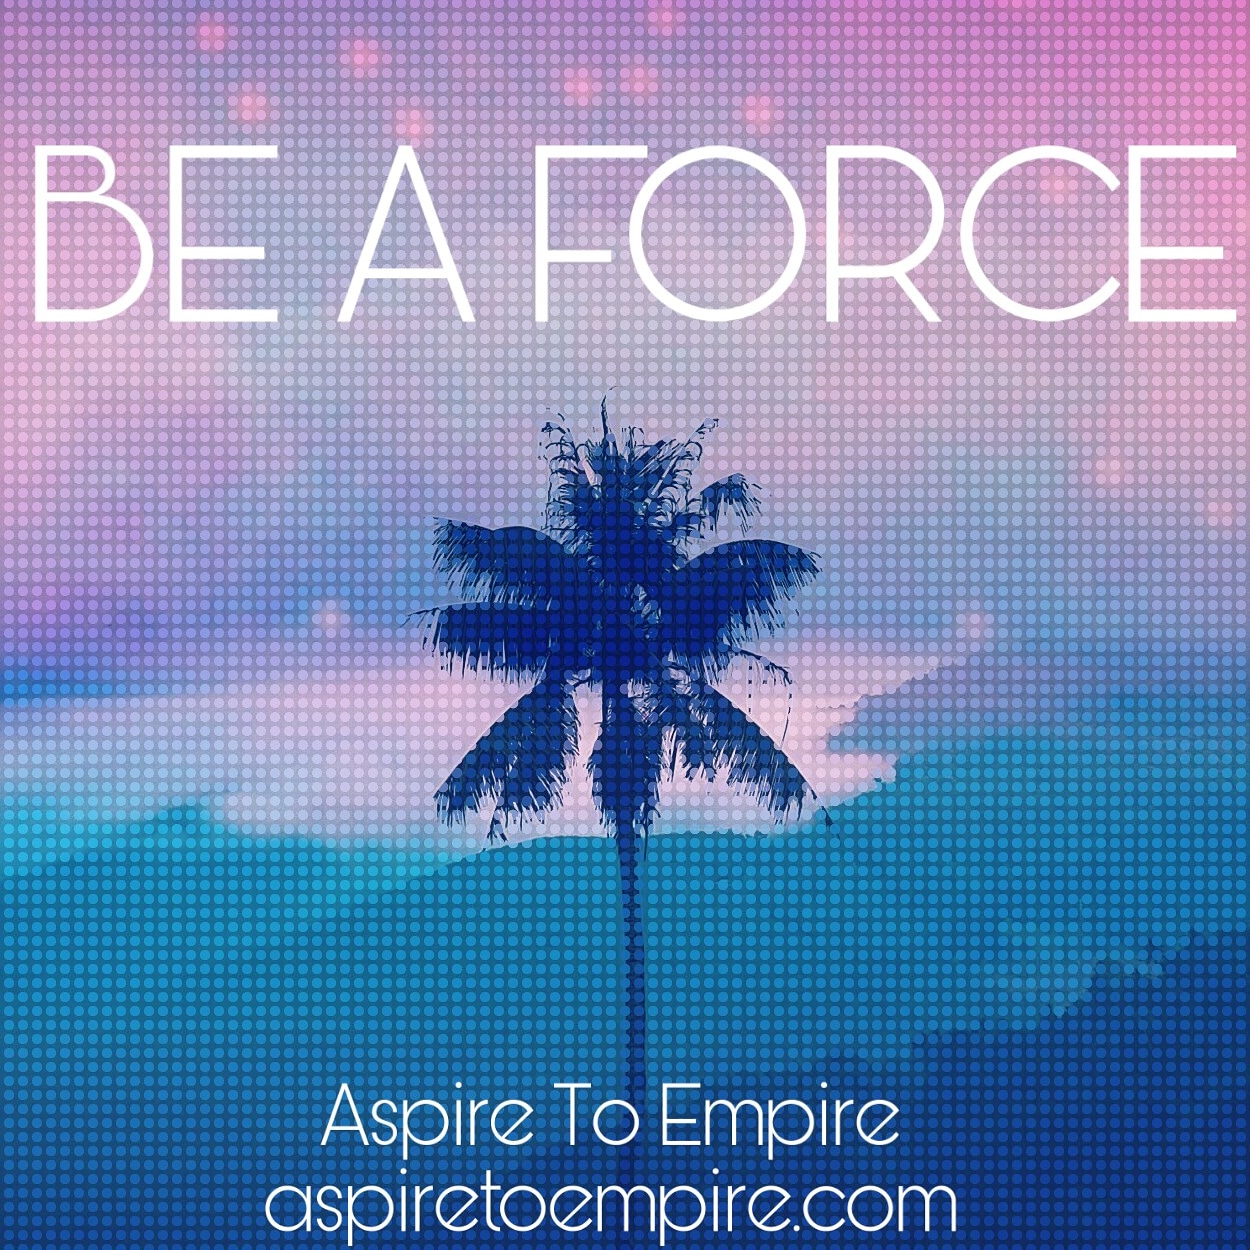 Be a Force podcast